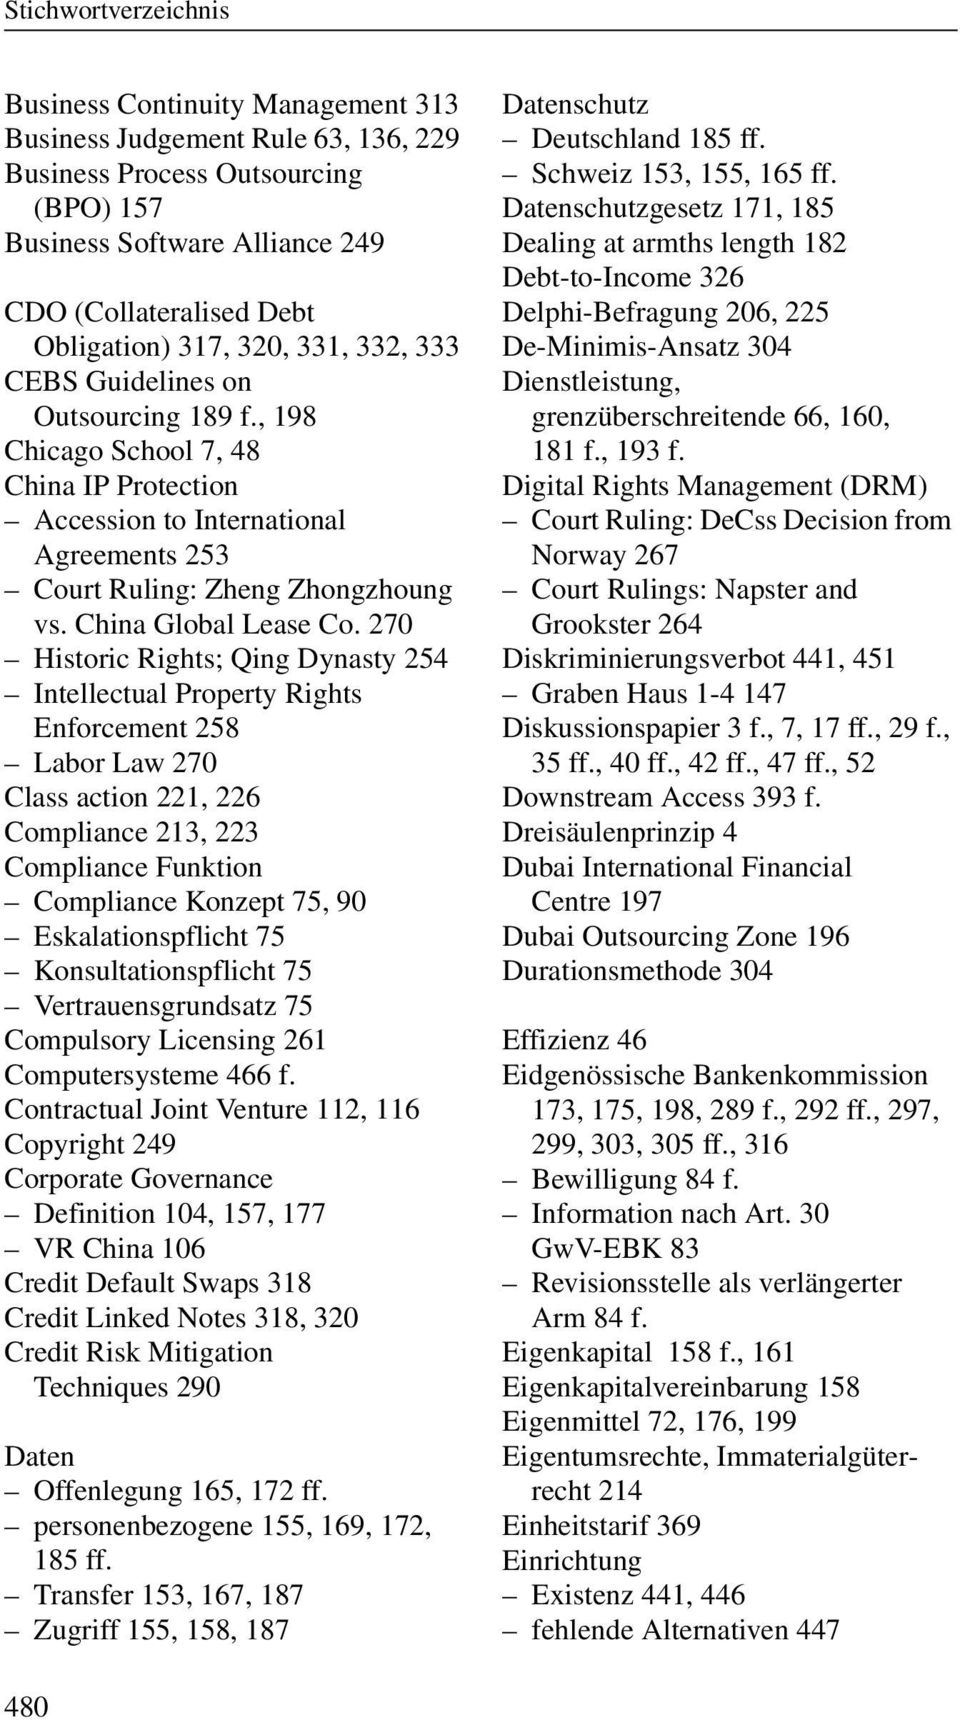 270 Historic Rights; Qing Dynasty 254 Intellectual Property Rights Enforcement 258 Labor Law 270 Class action 221, 226 Compliance 213, 223 Compliance Funktion Compliance Konzept 75, 90